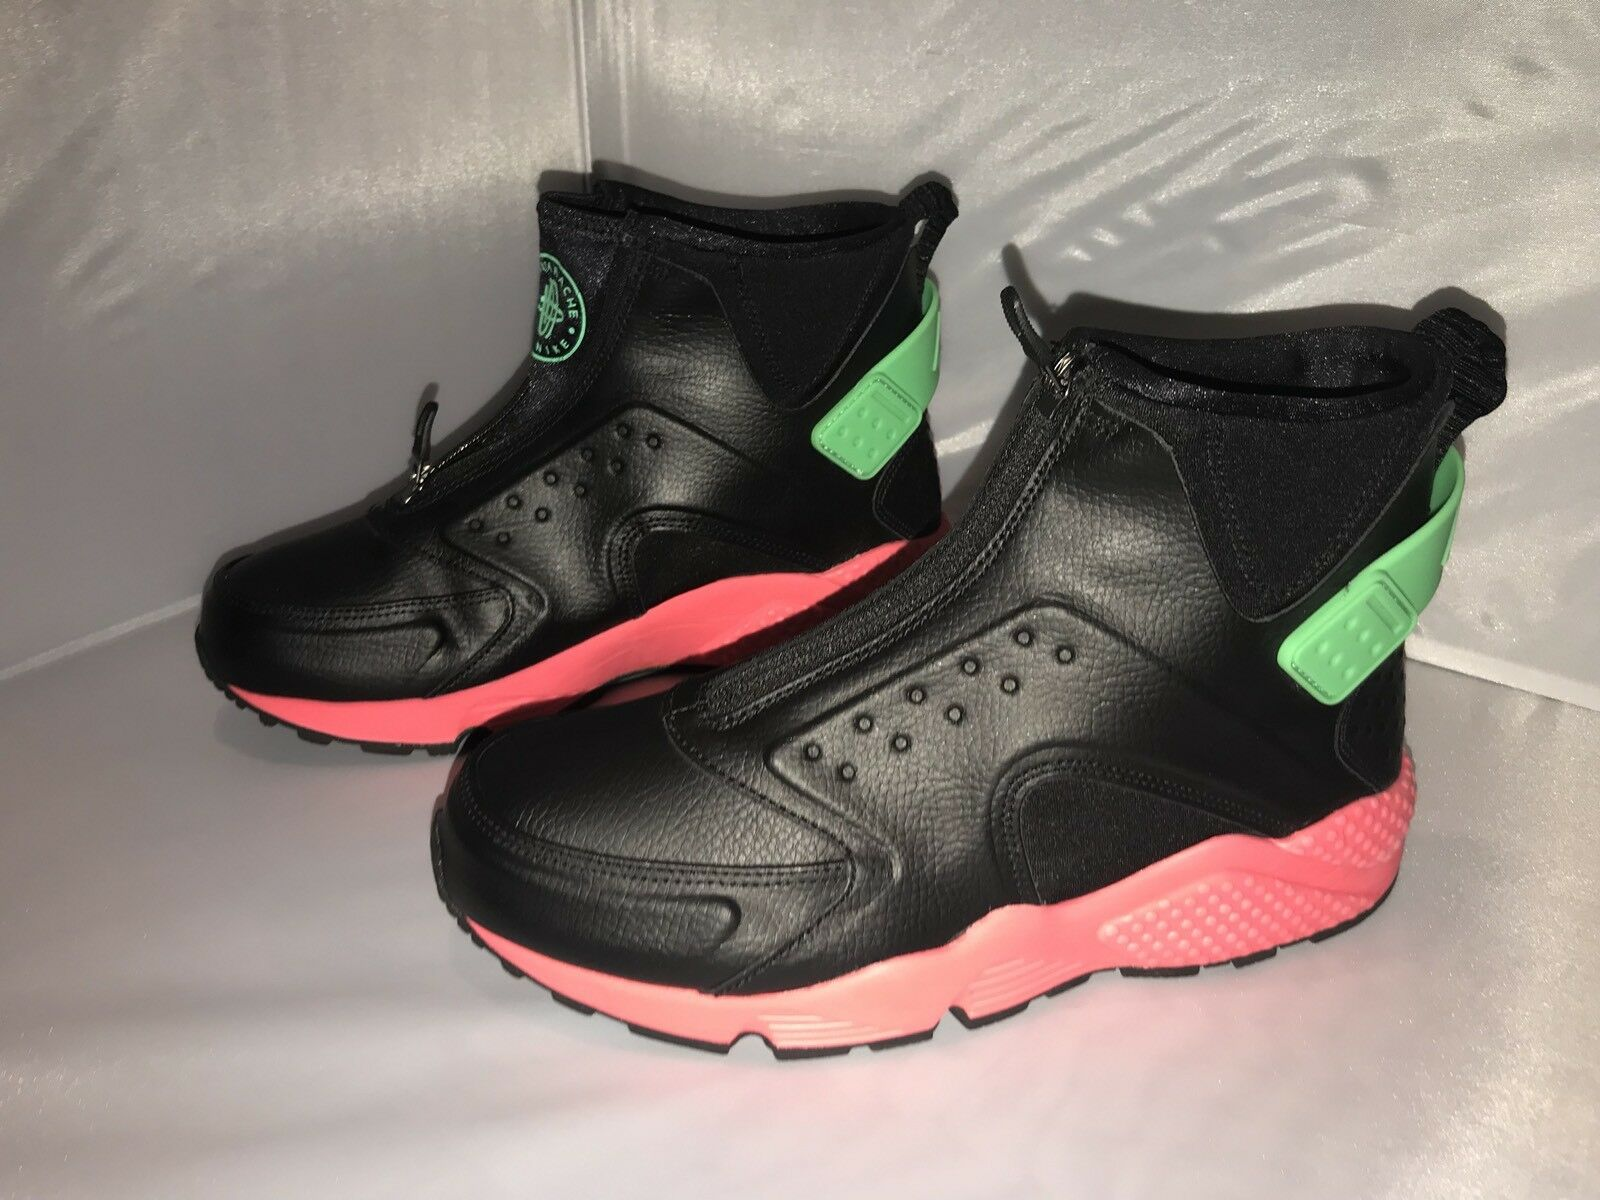 Nike Air Huarache Run Mid women's size 9 Comfortable and good-looking